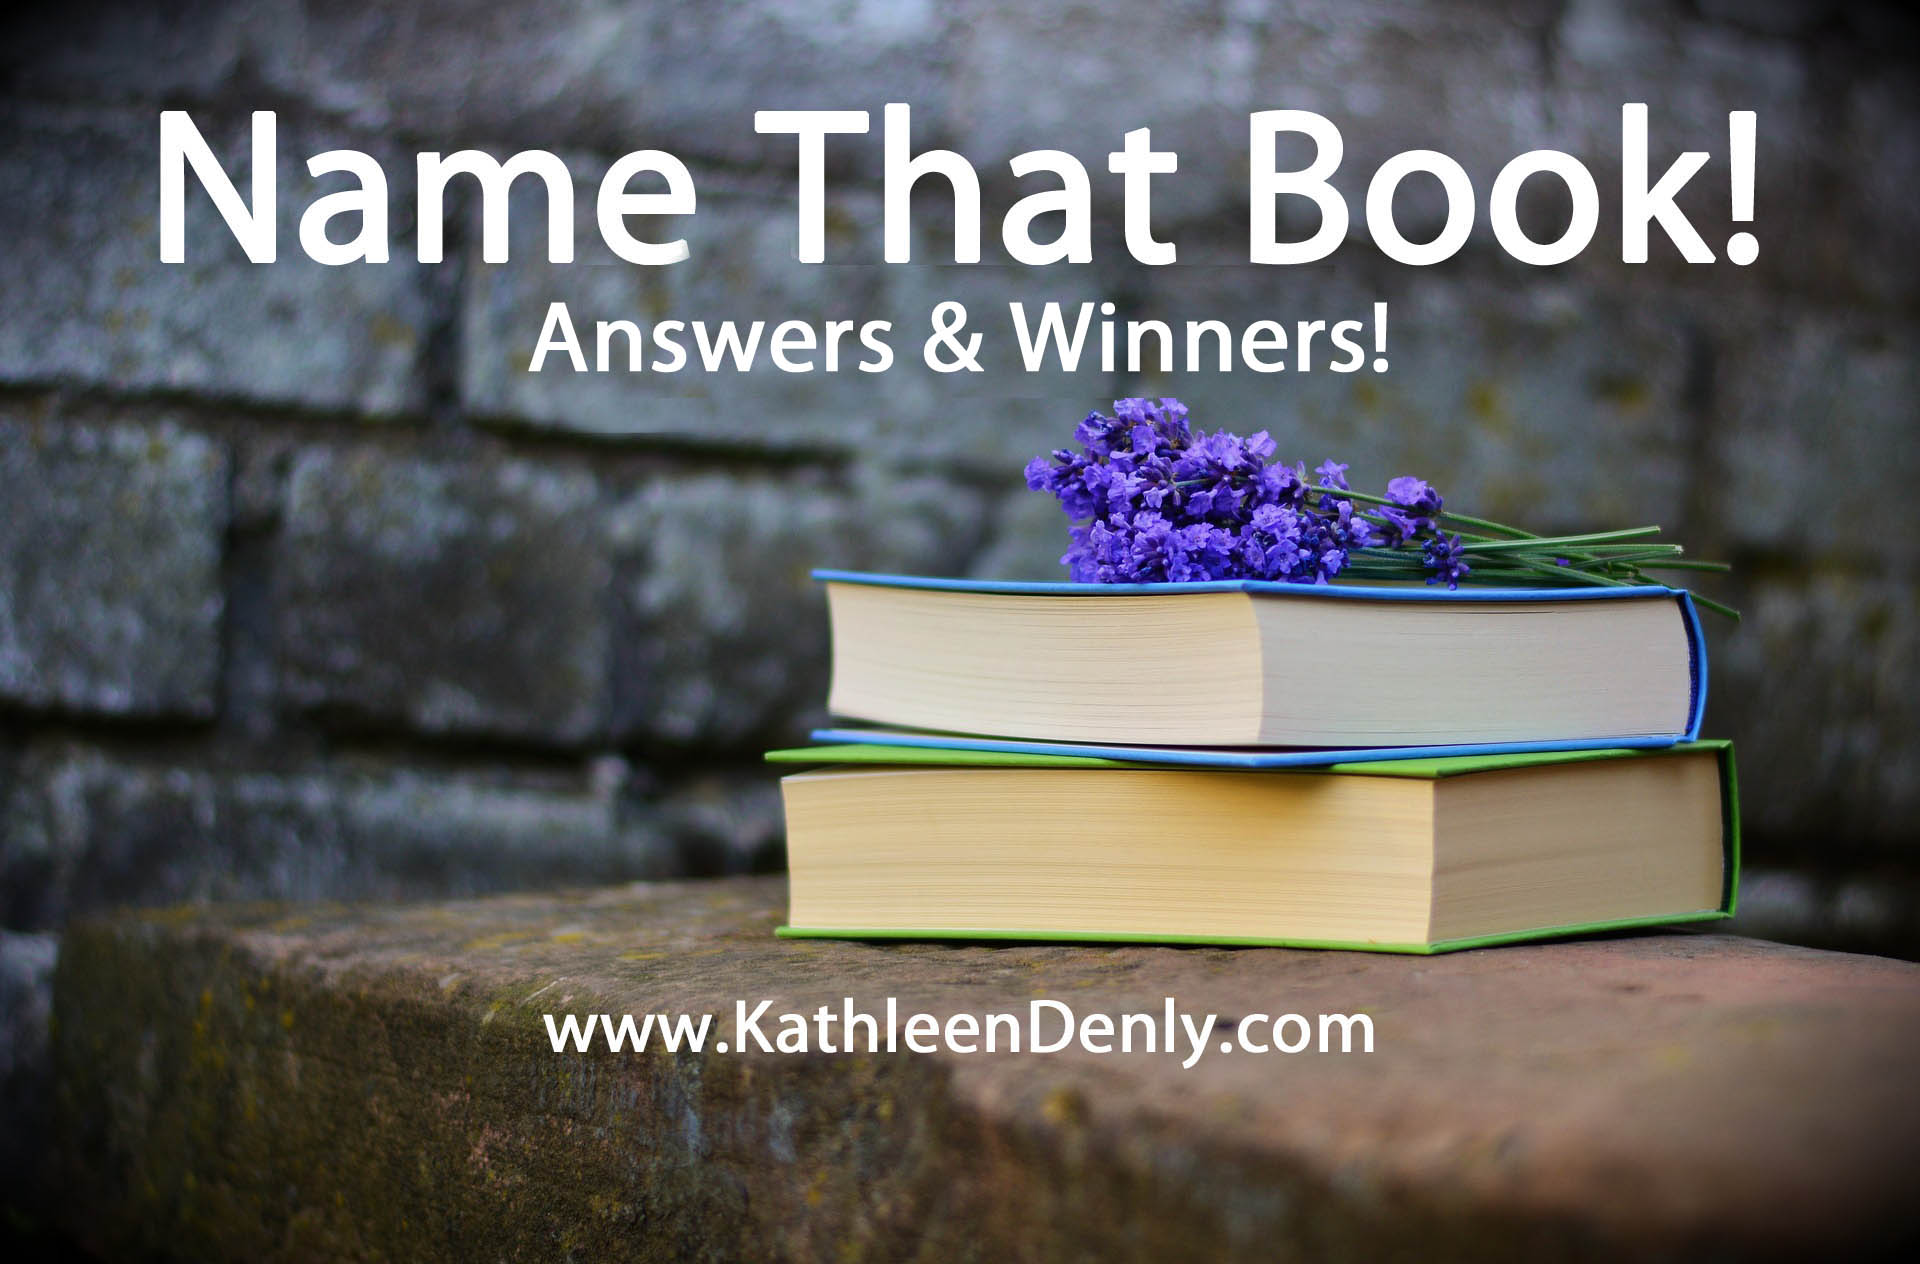 Name That Book Header Image - Answers & Winners